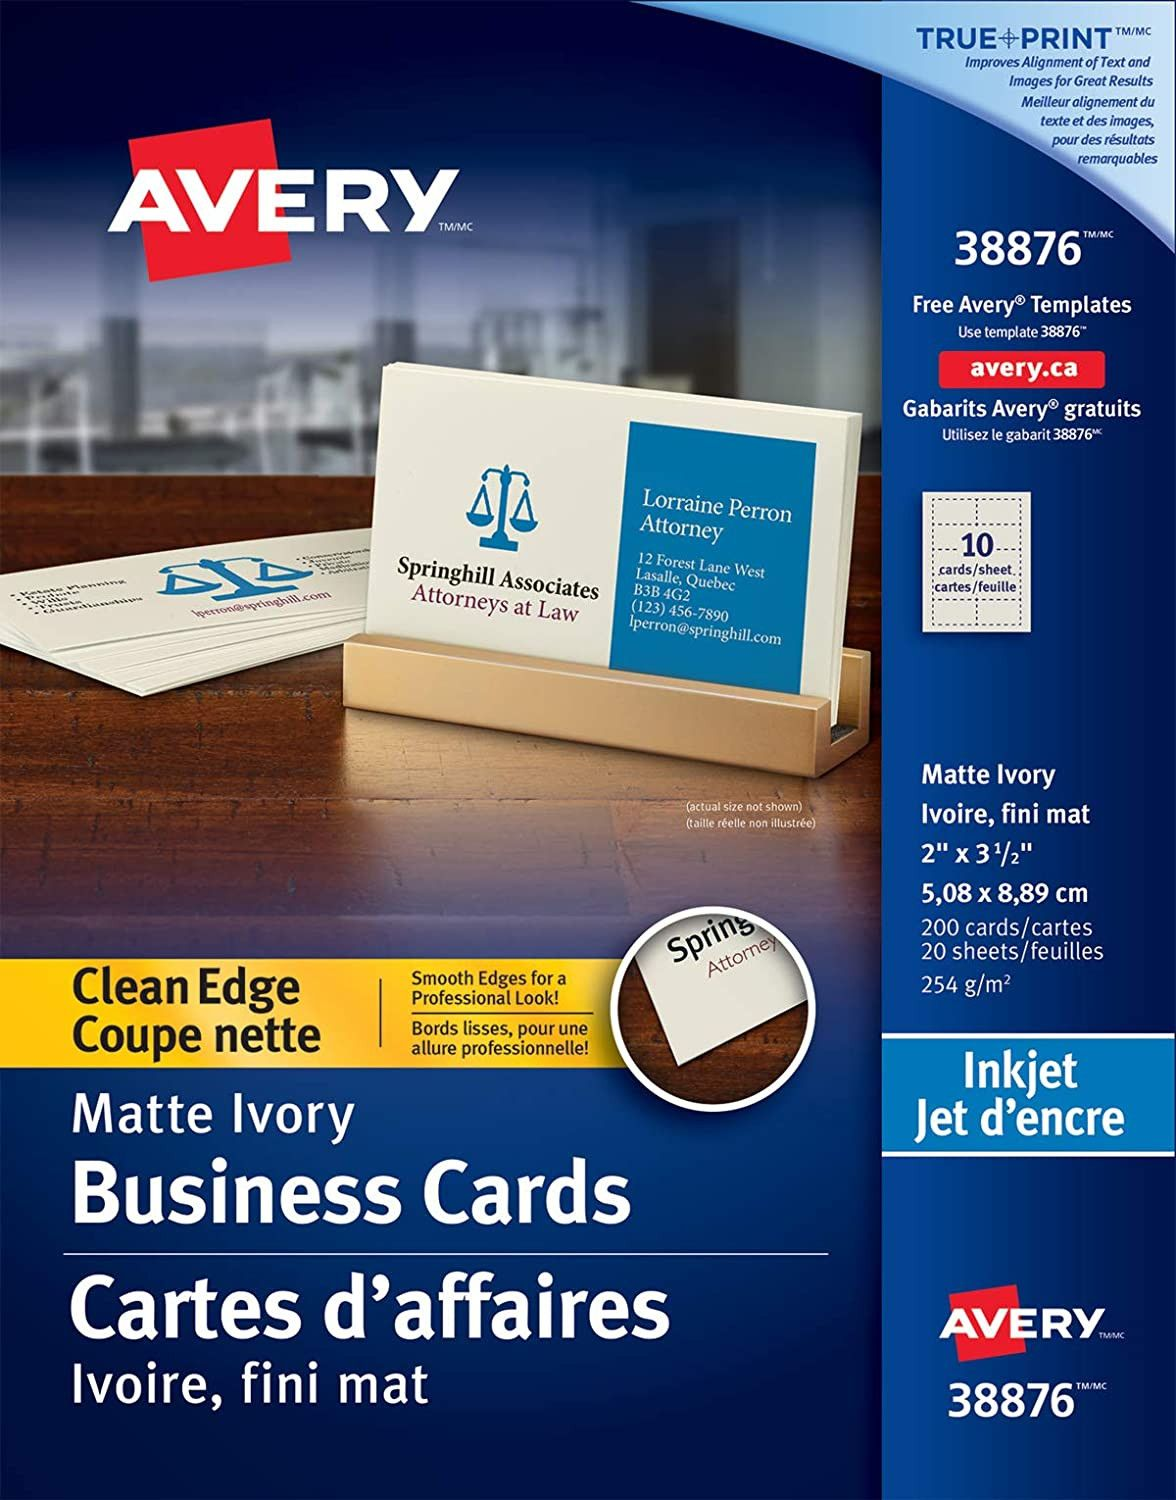 Avery Business Card Template Photoshop Business Card Template Photoshop Avery Business Cards Business Card Template Avery business card template photoshop